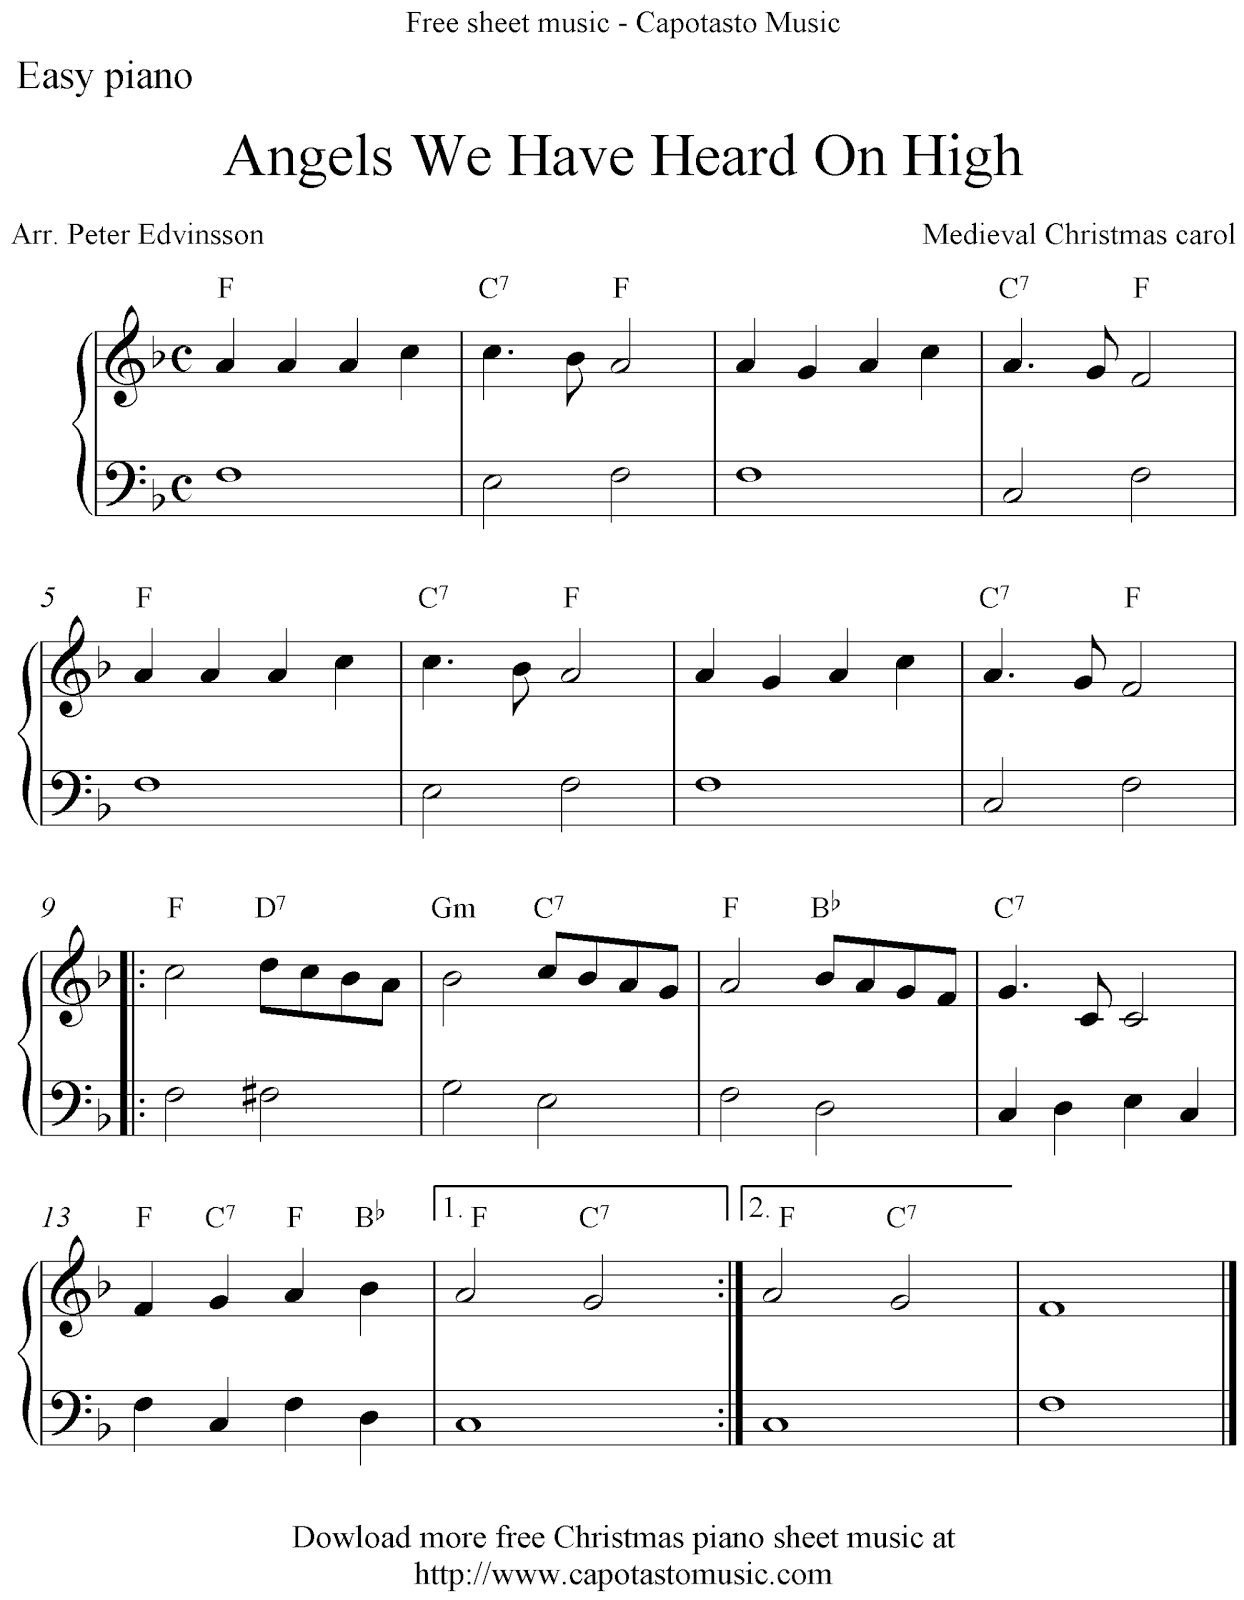 Free christmas piano sheet music solo angels we have heard on high